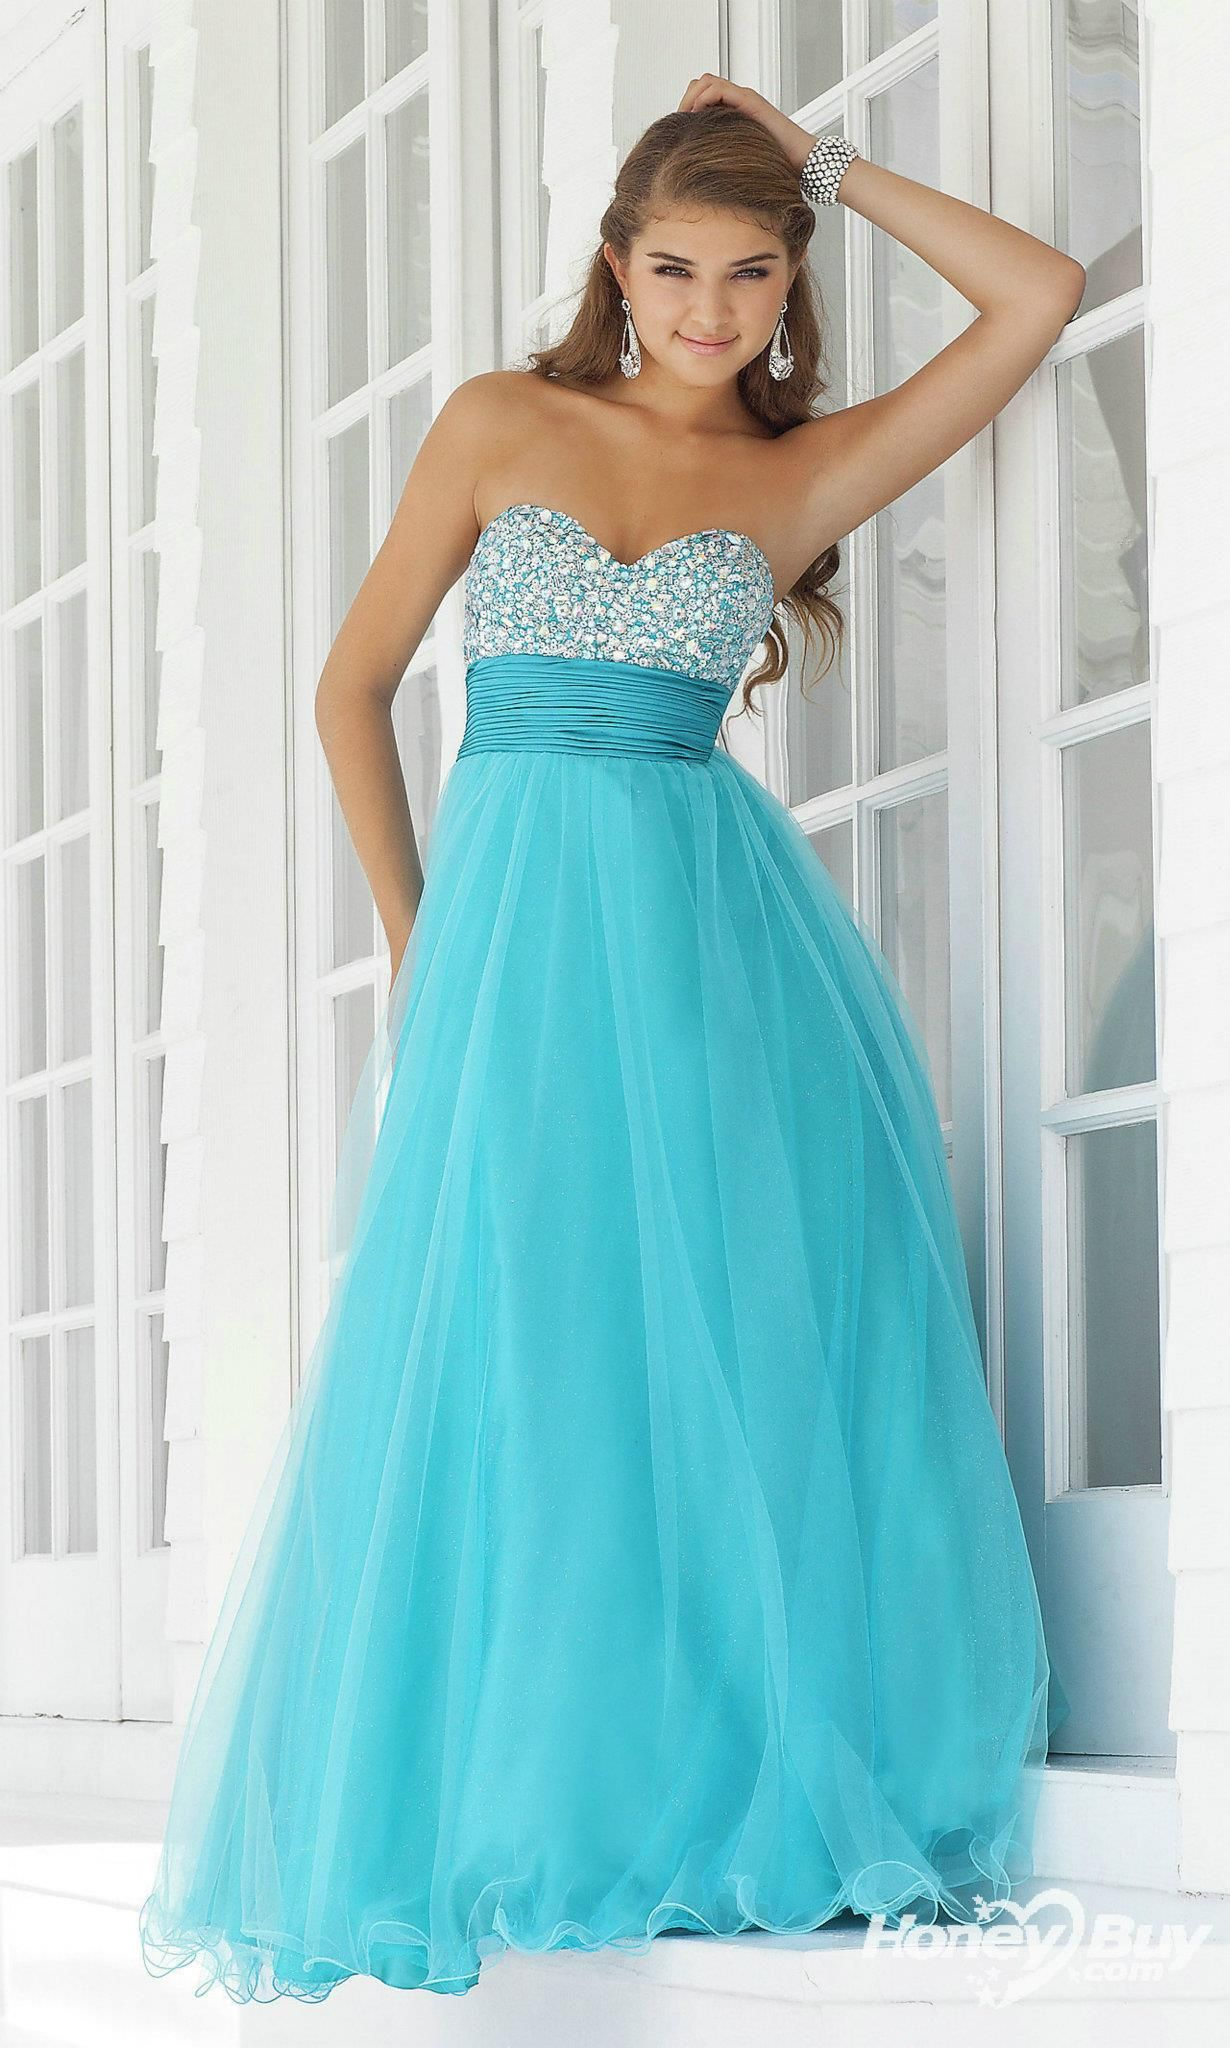 Pin by Annie M on Prom dresses/wedding dresses/prom stuff/ all kinds ...